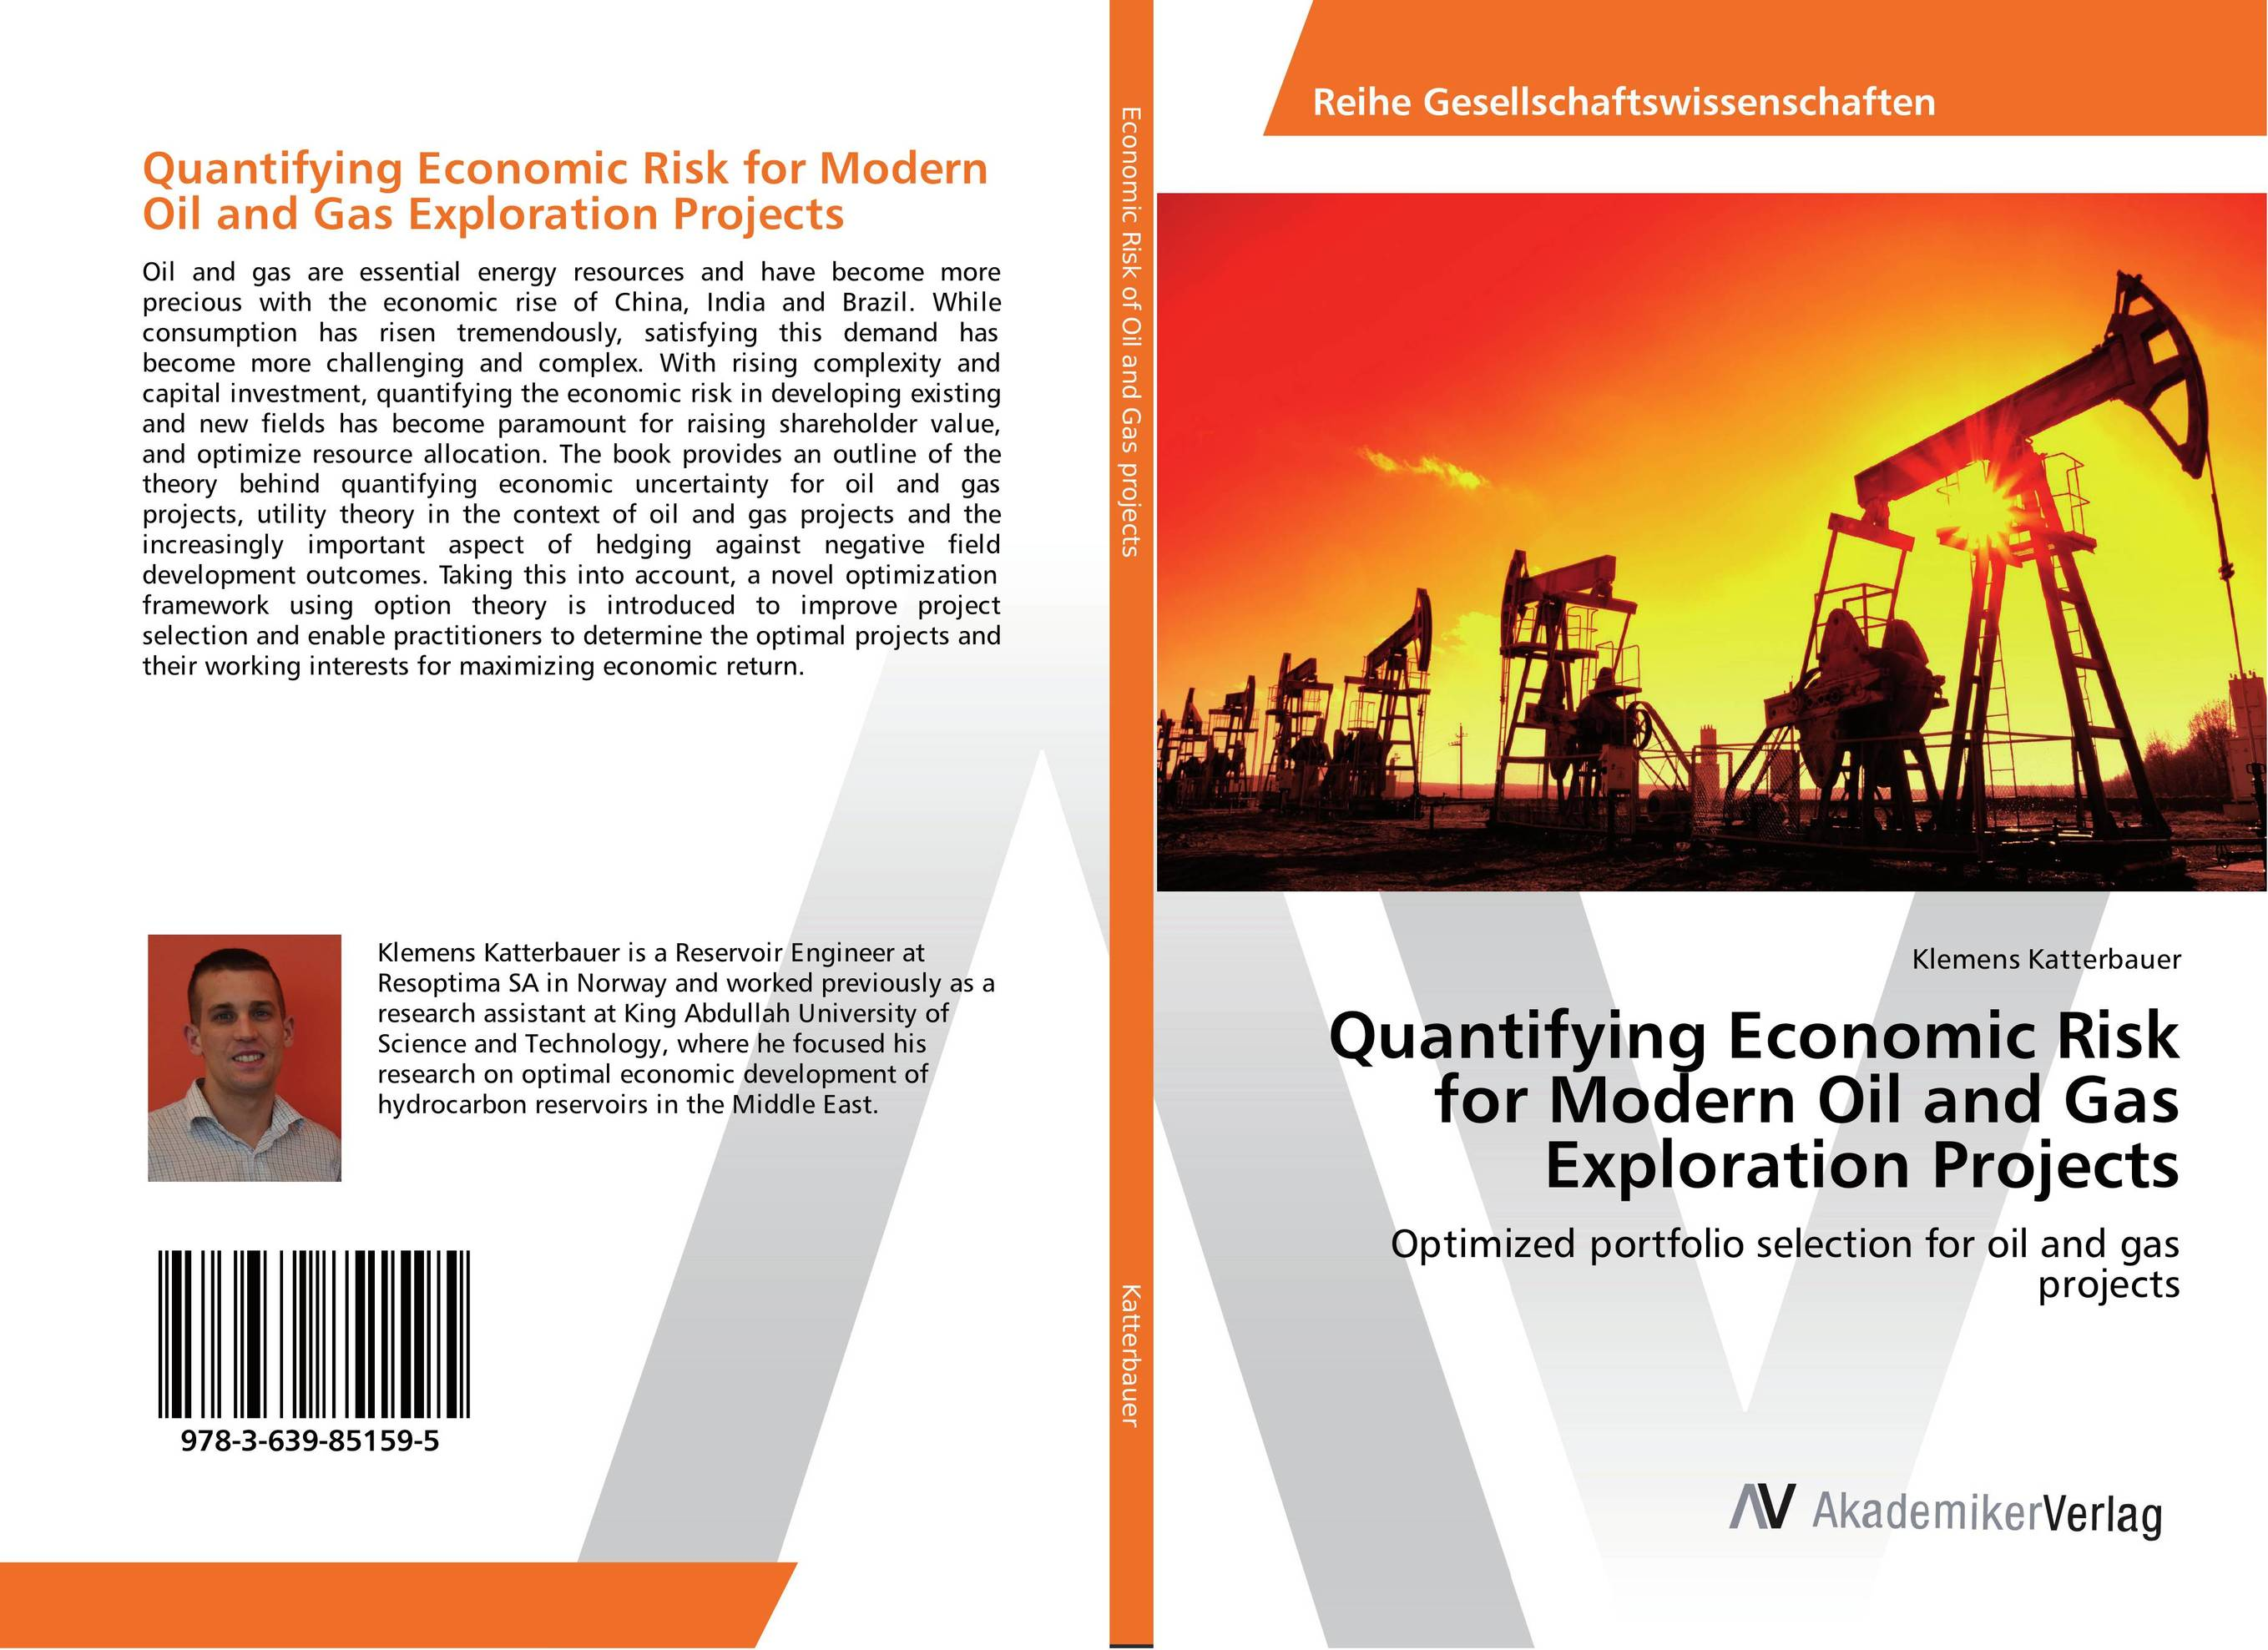 Quantifying Economic Risk for Modern Oil and Gas Exploration Projects economic methodology